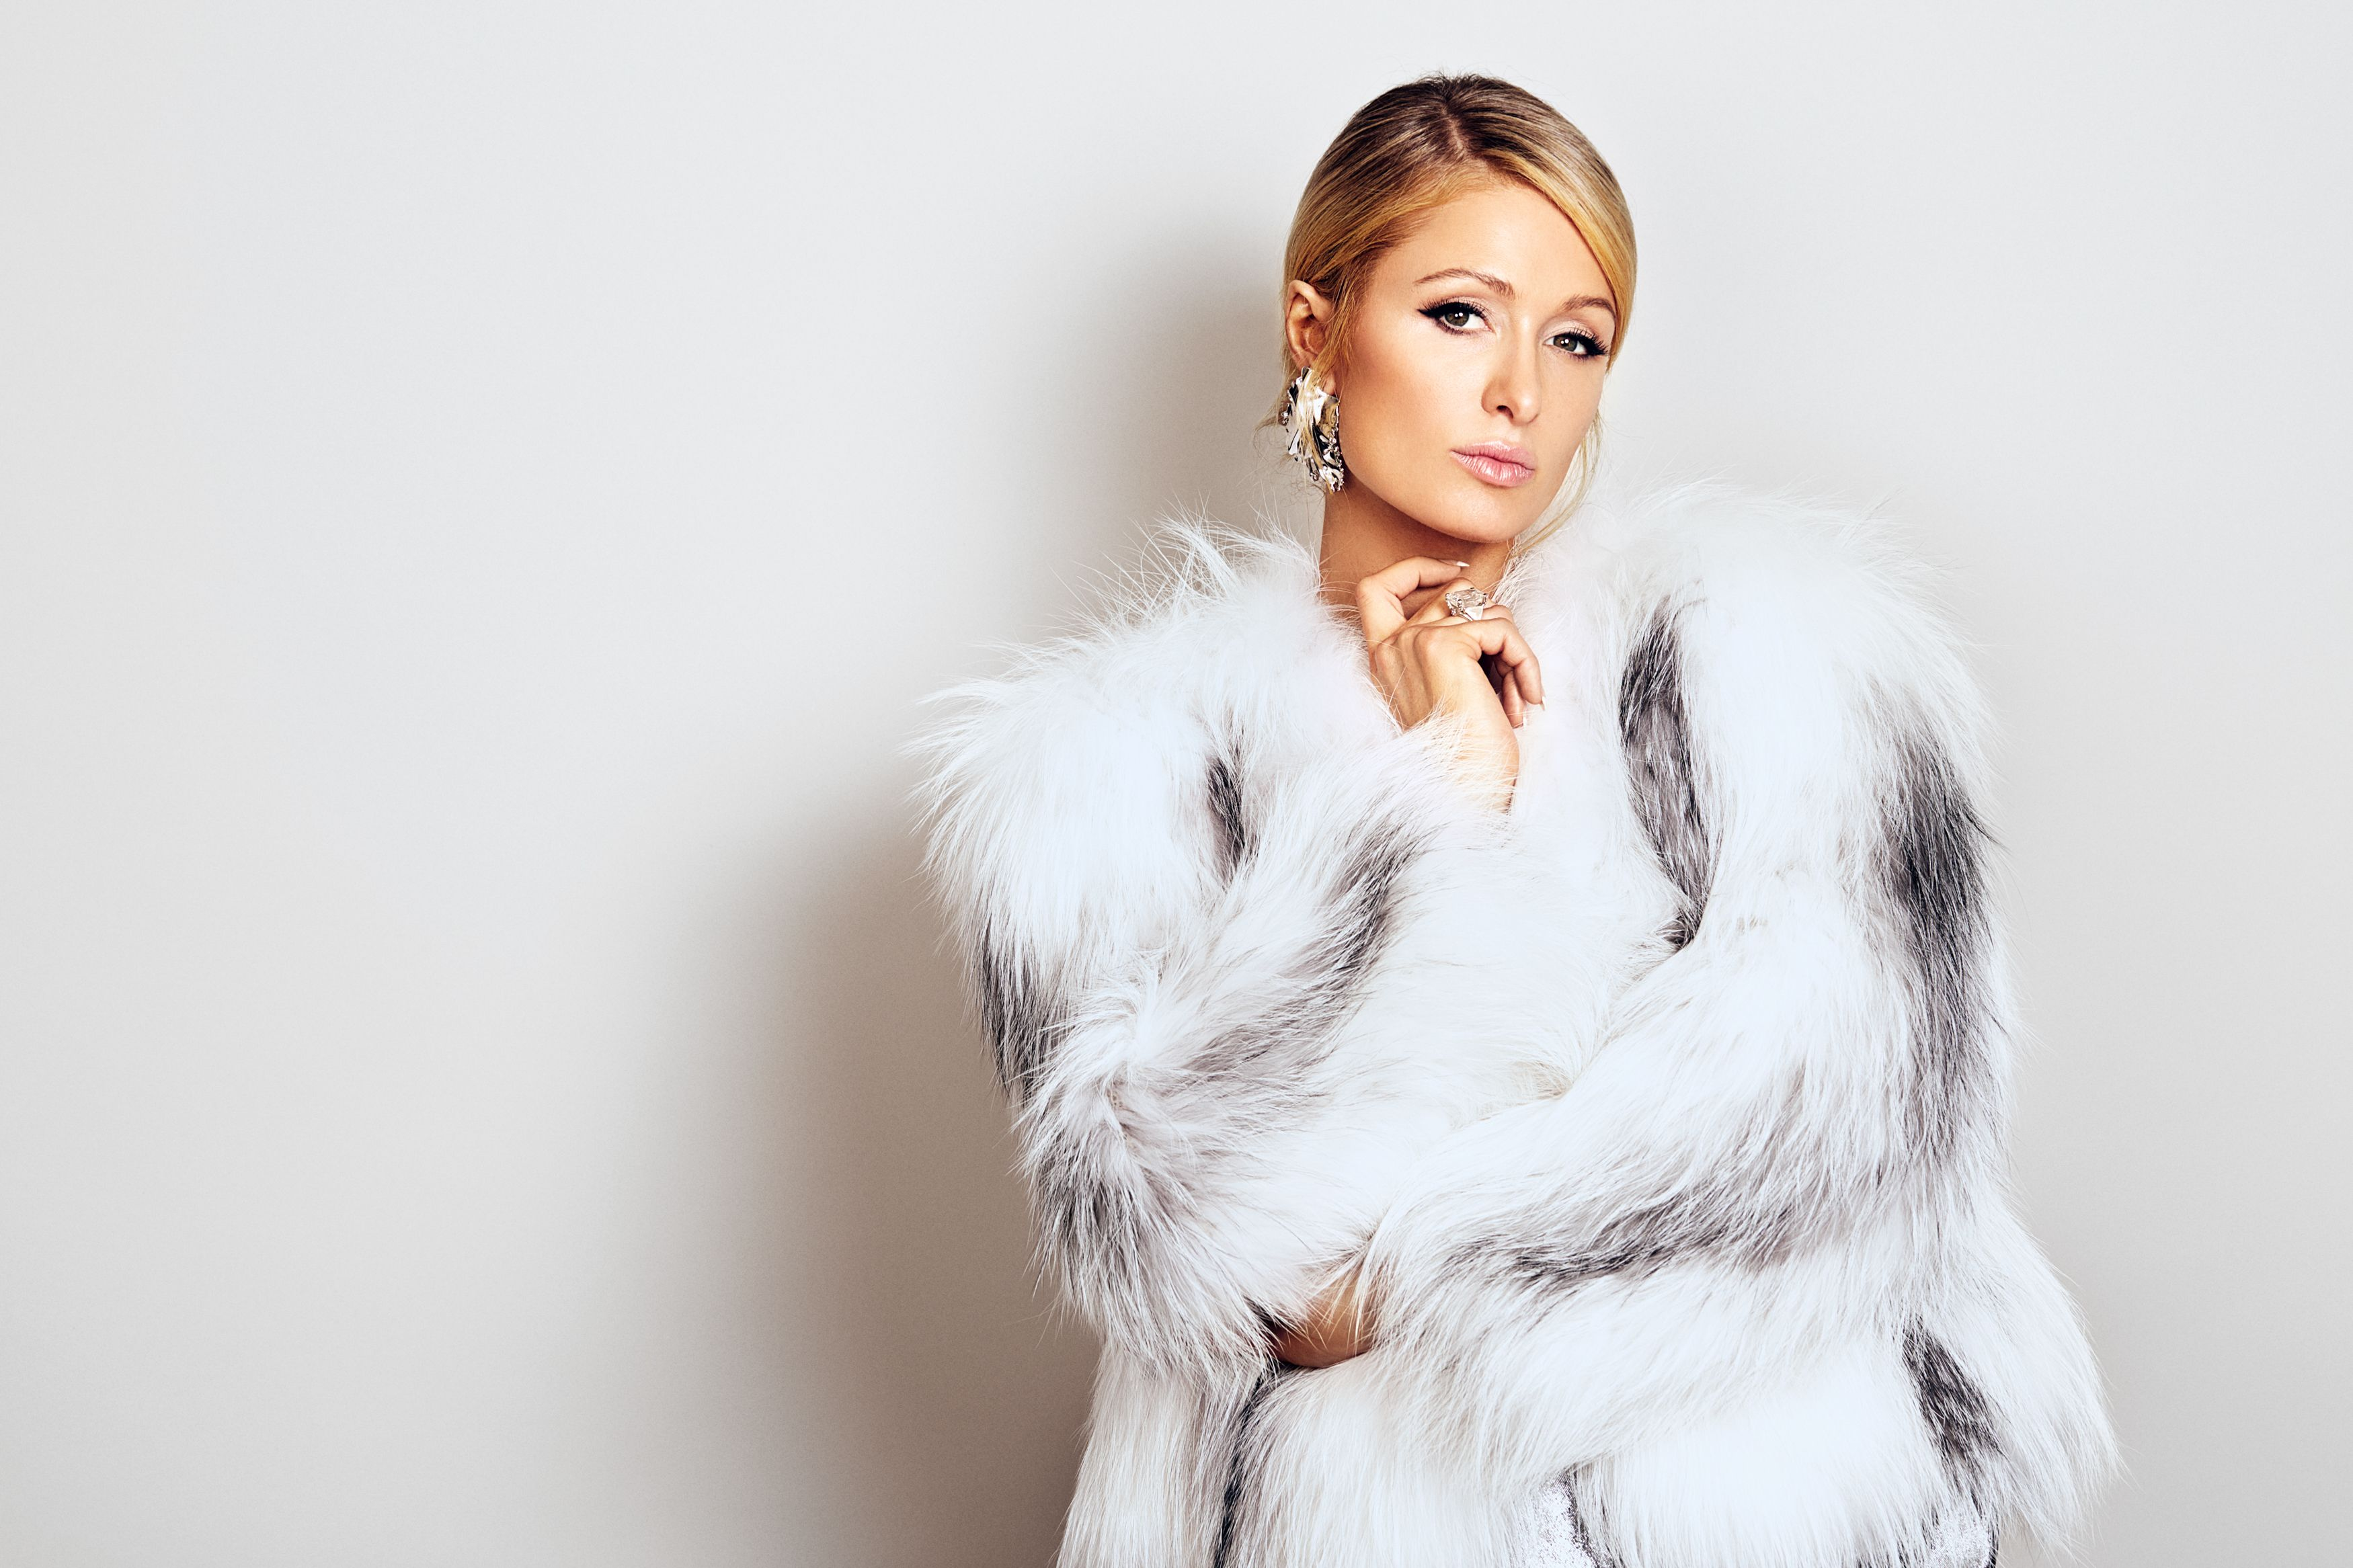 Who is the Real Paris Hilton? - Paris Hilton interview